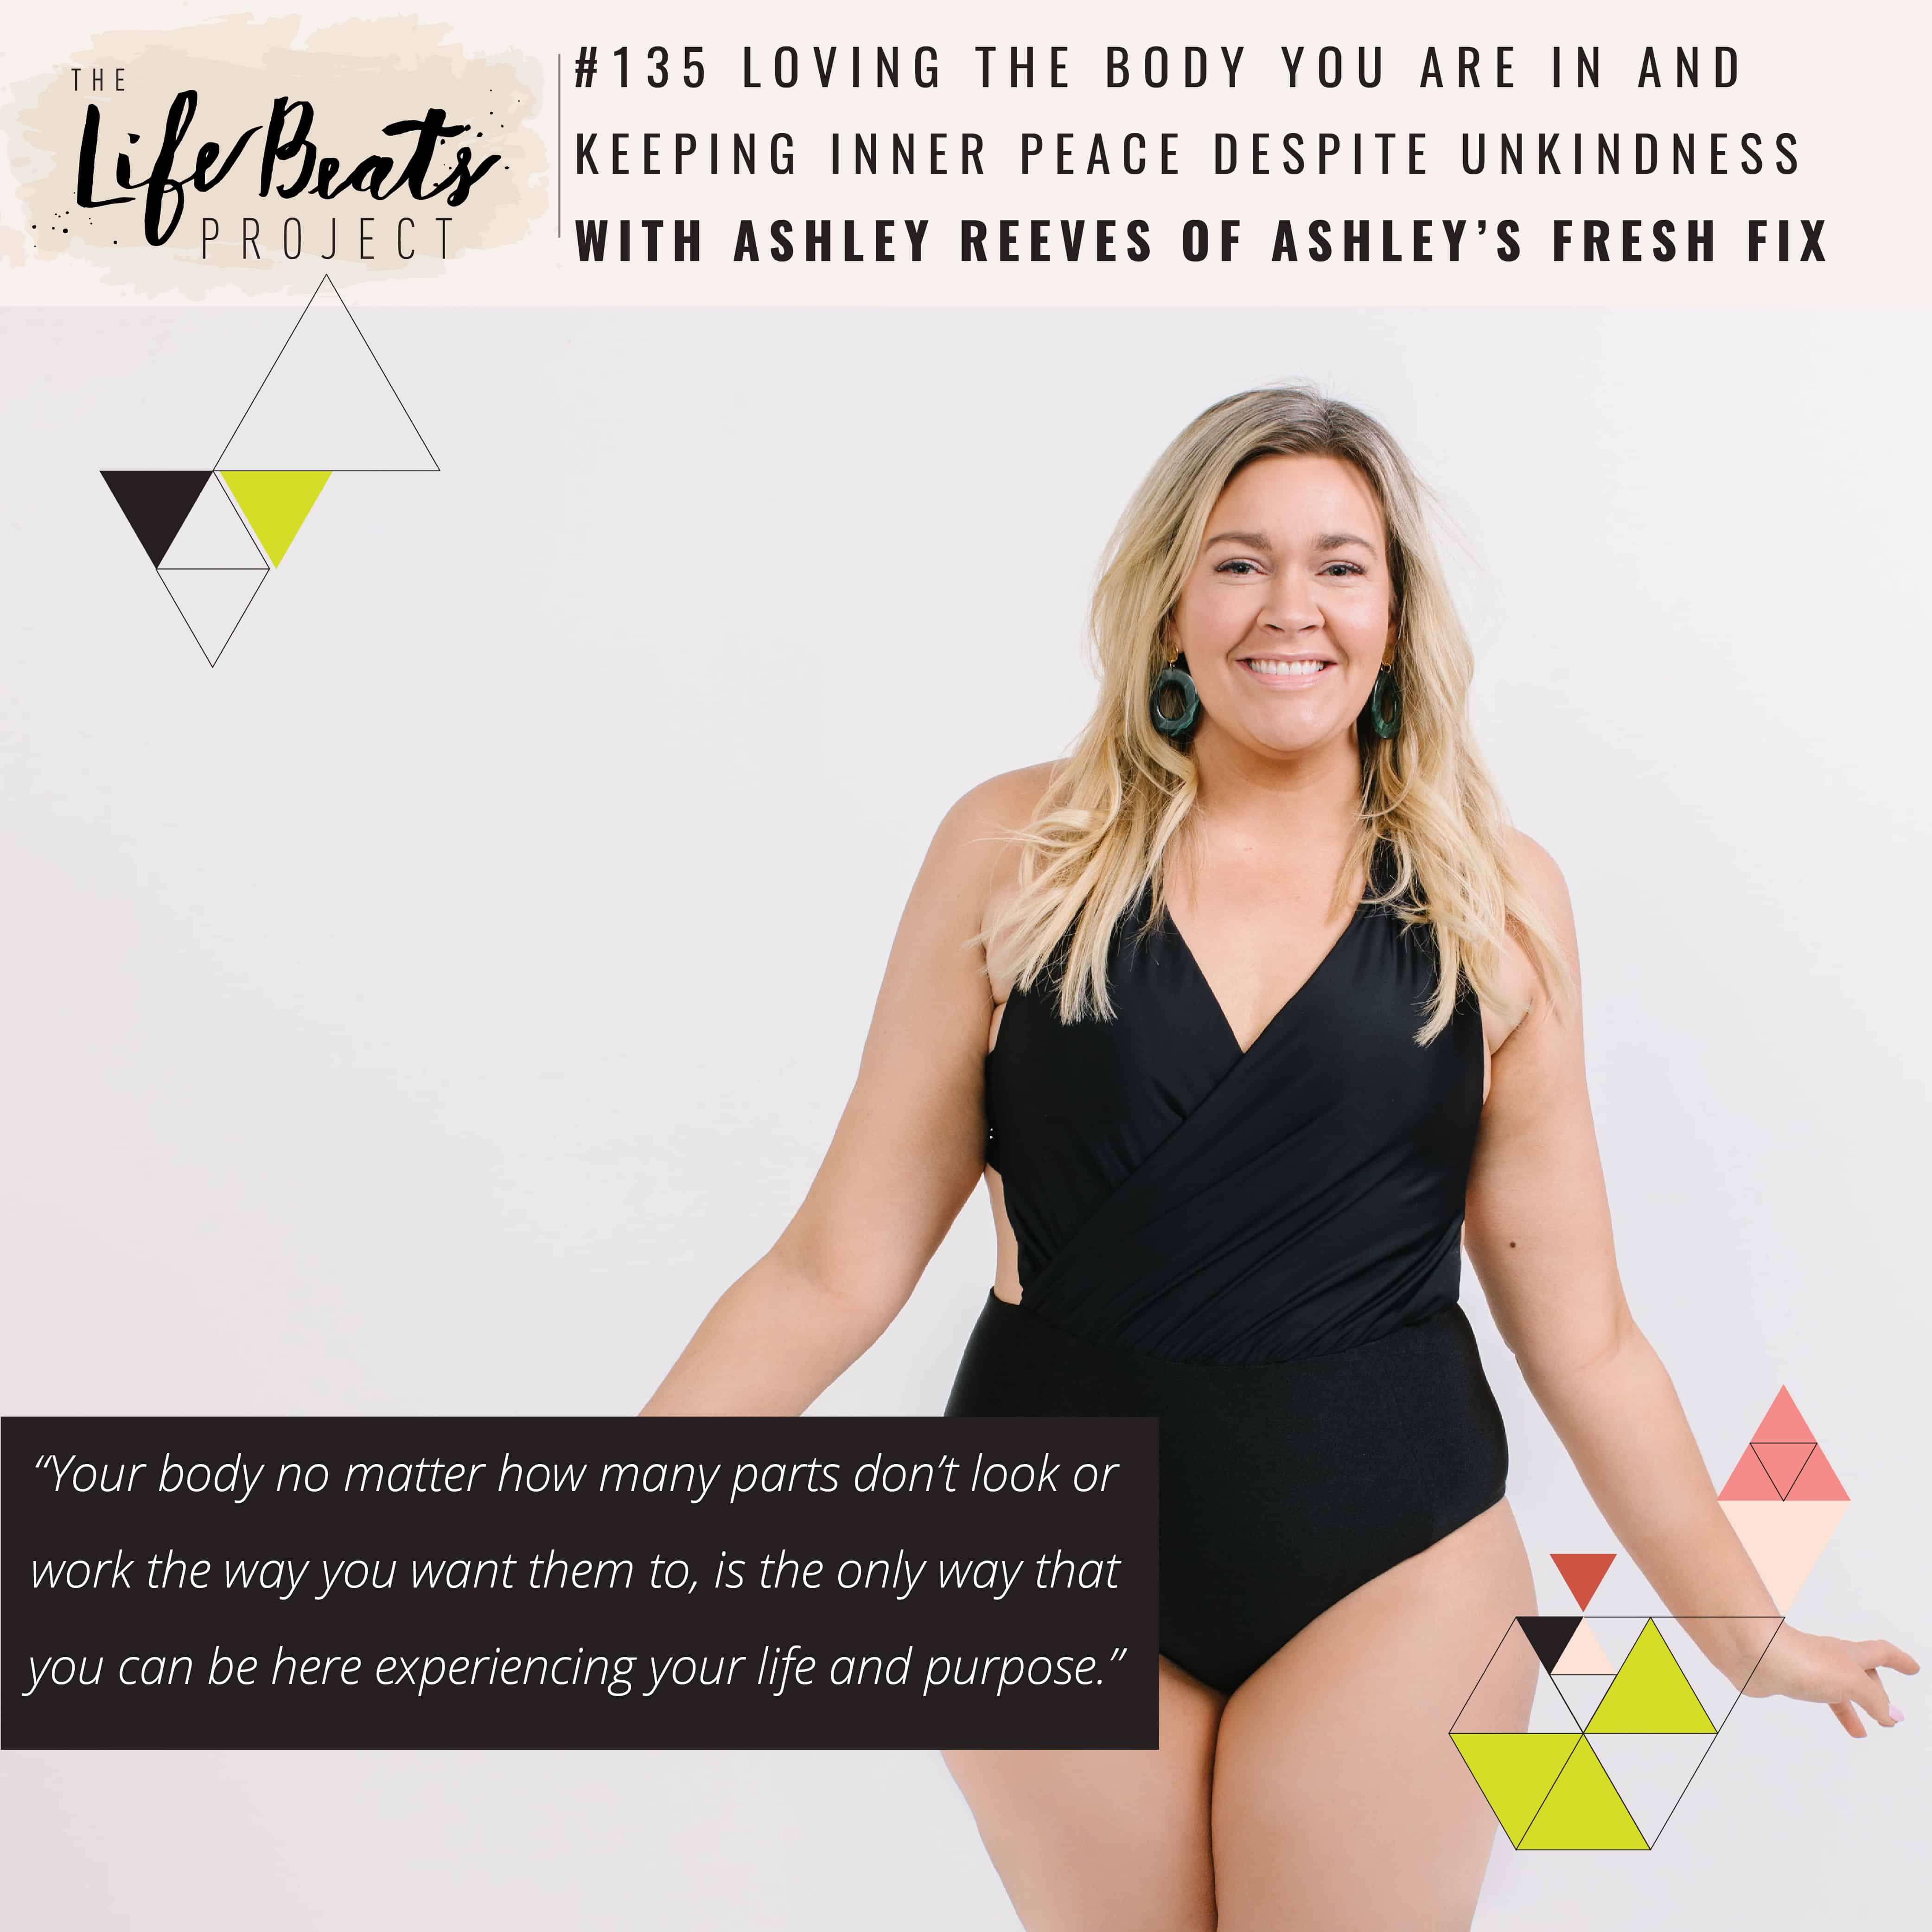 body image body love better body love Ashley Reeves Ashley's Fresh Fix teased bullied overweight size bathing suit no regrets prank podcast LifeBeats size kindness